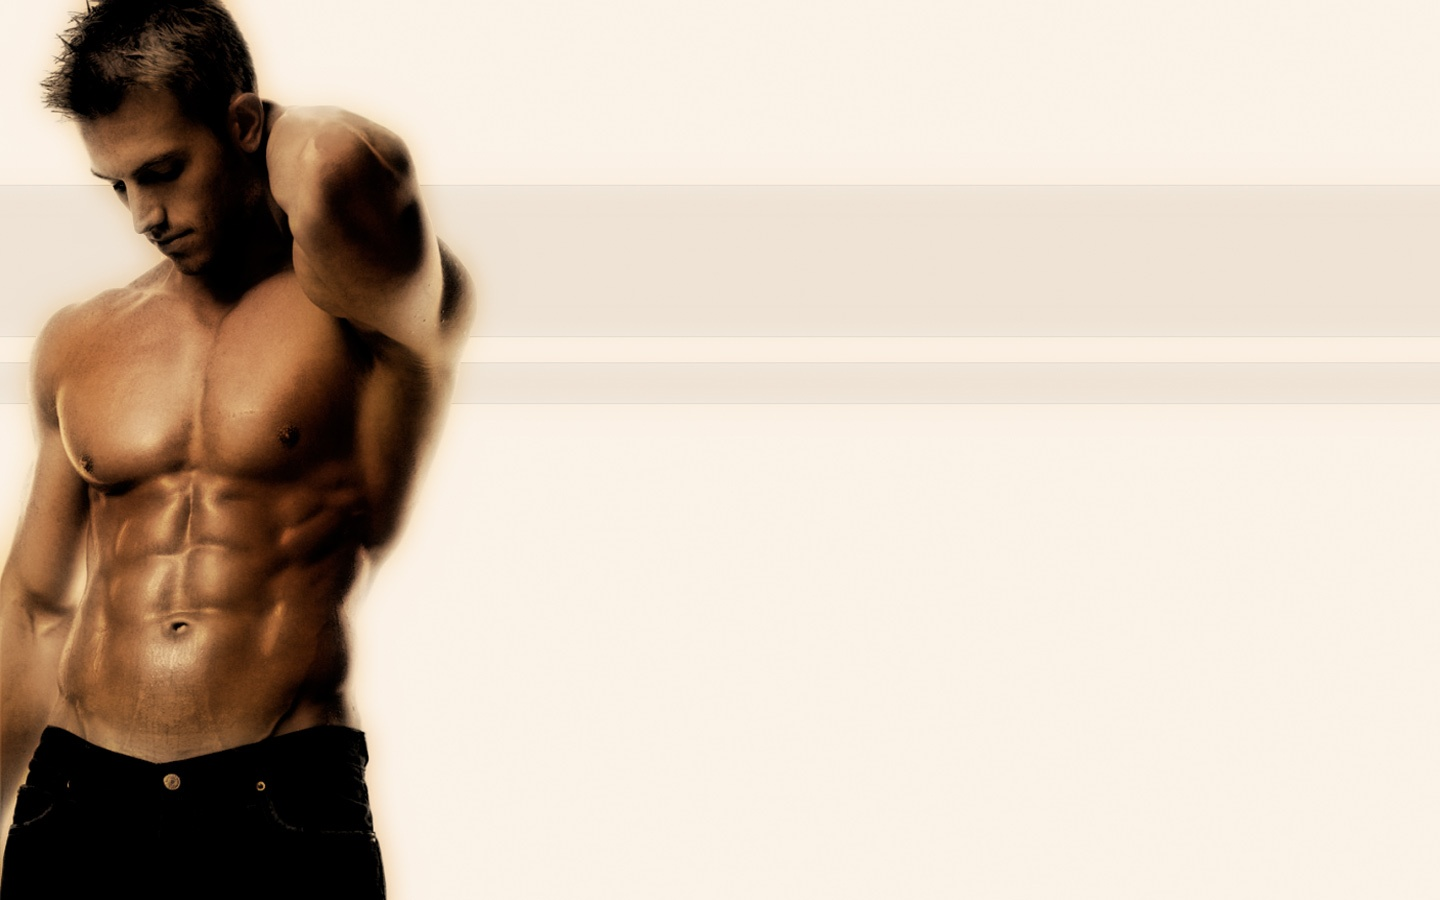 1440x900 Male Body desktop wallpapers and stock photos 1440x900